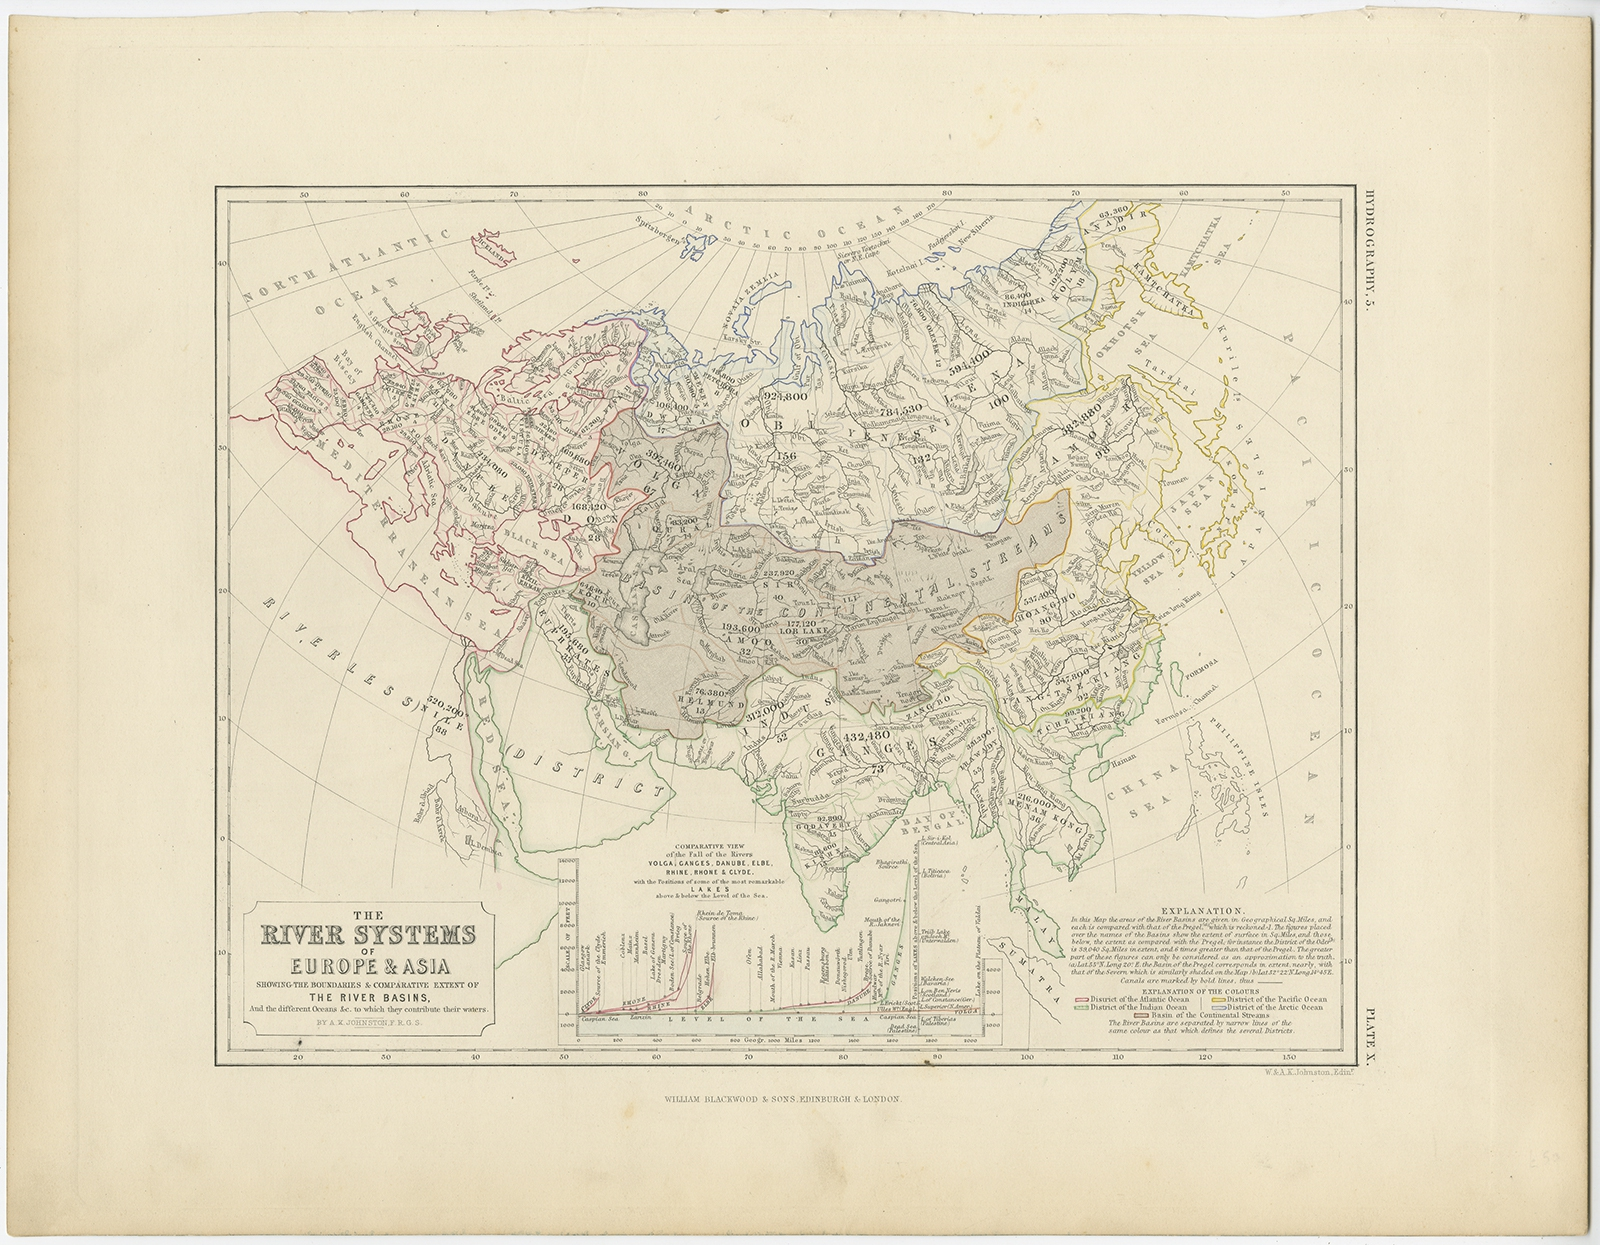 The River Systems of Europe & Asia - Johnston (c.1850)